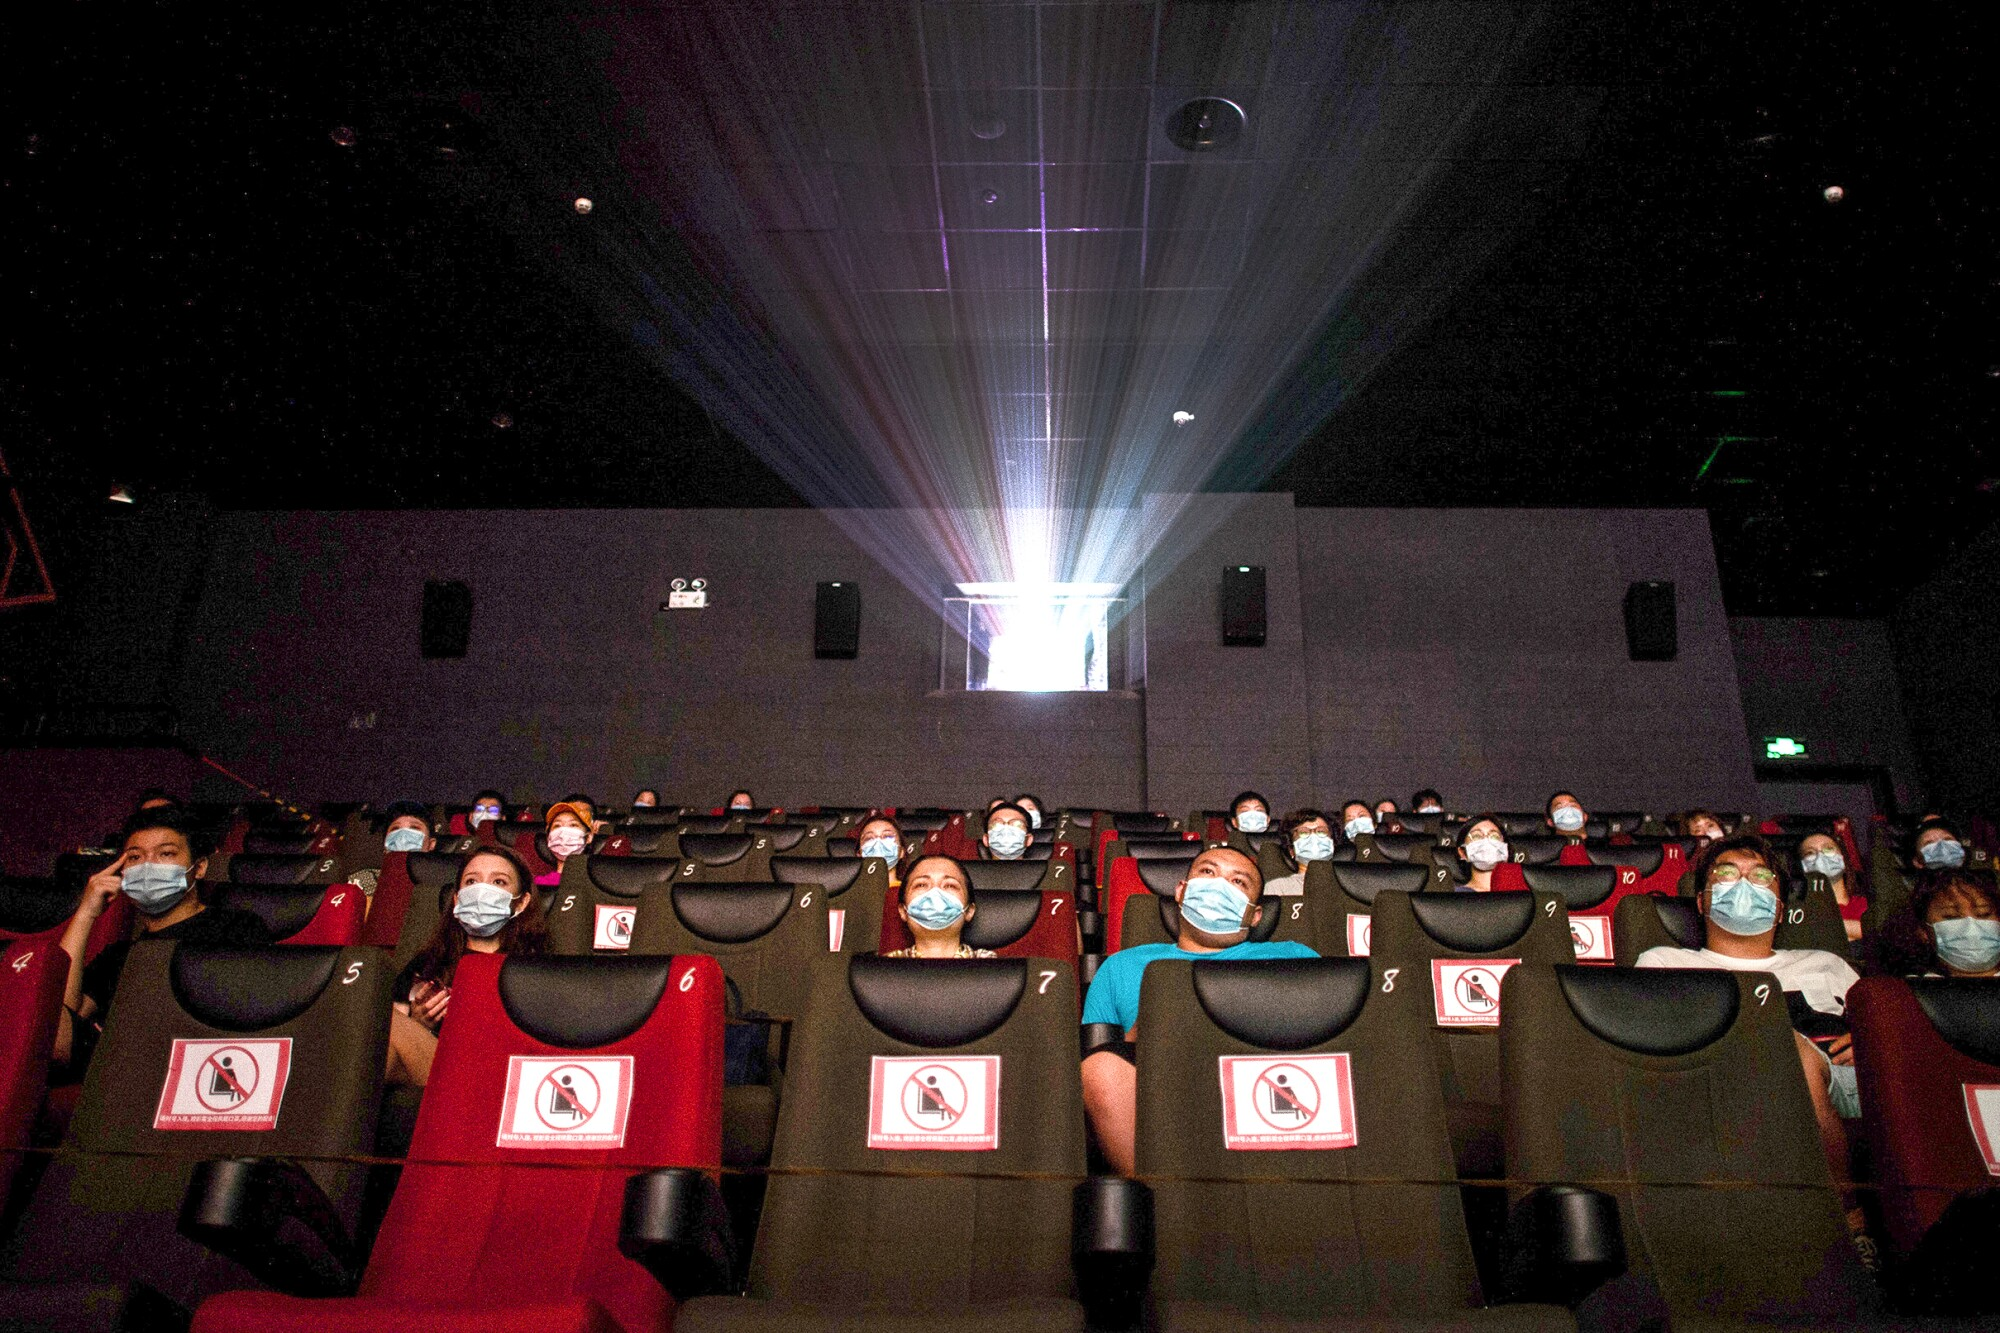 People in masks watch a movie, sitting apart to ensure social distancing.